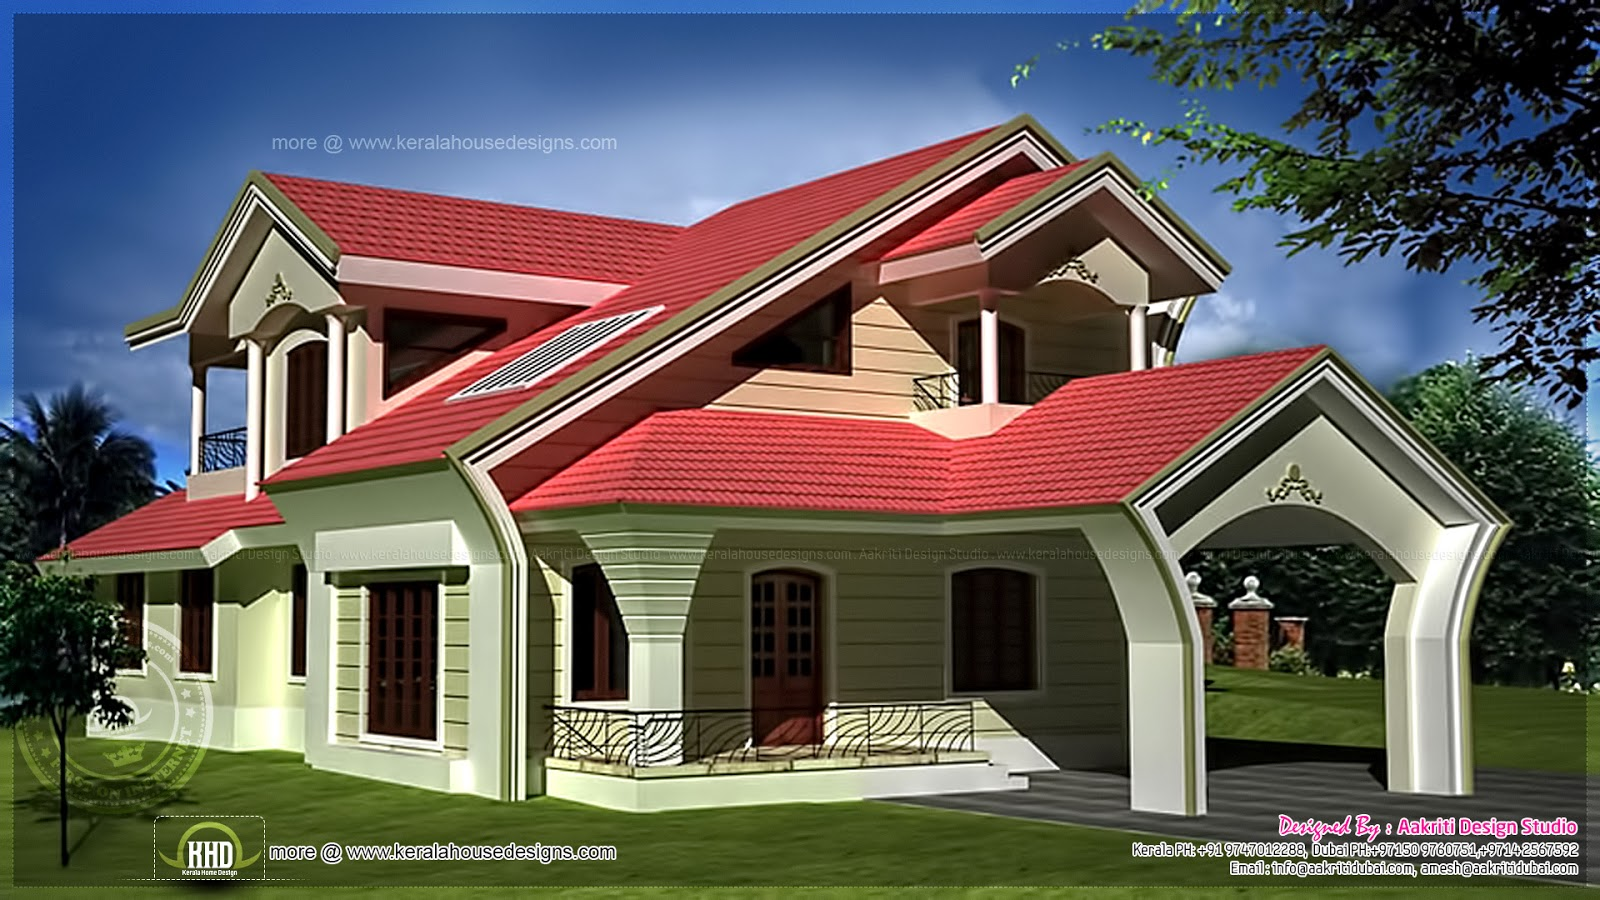 September 2013 kerala home design and floor plans for House design pic